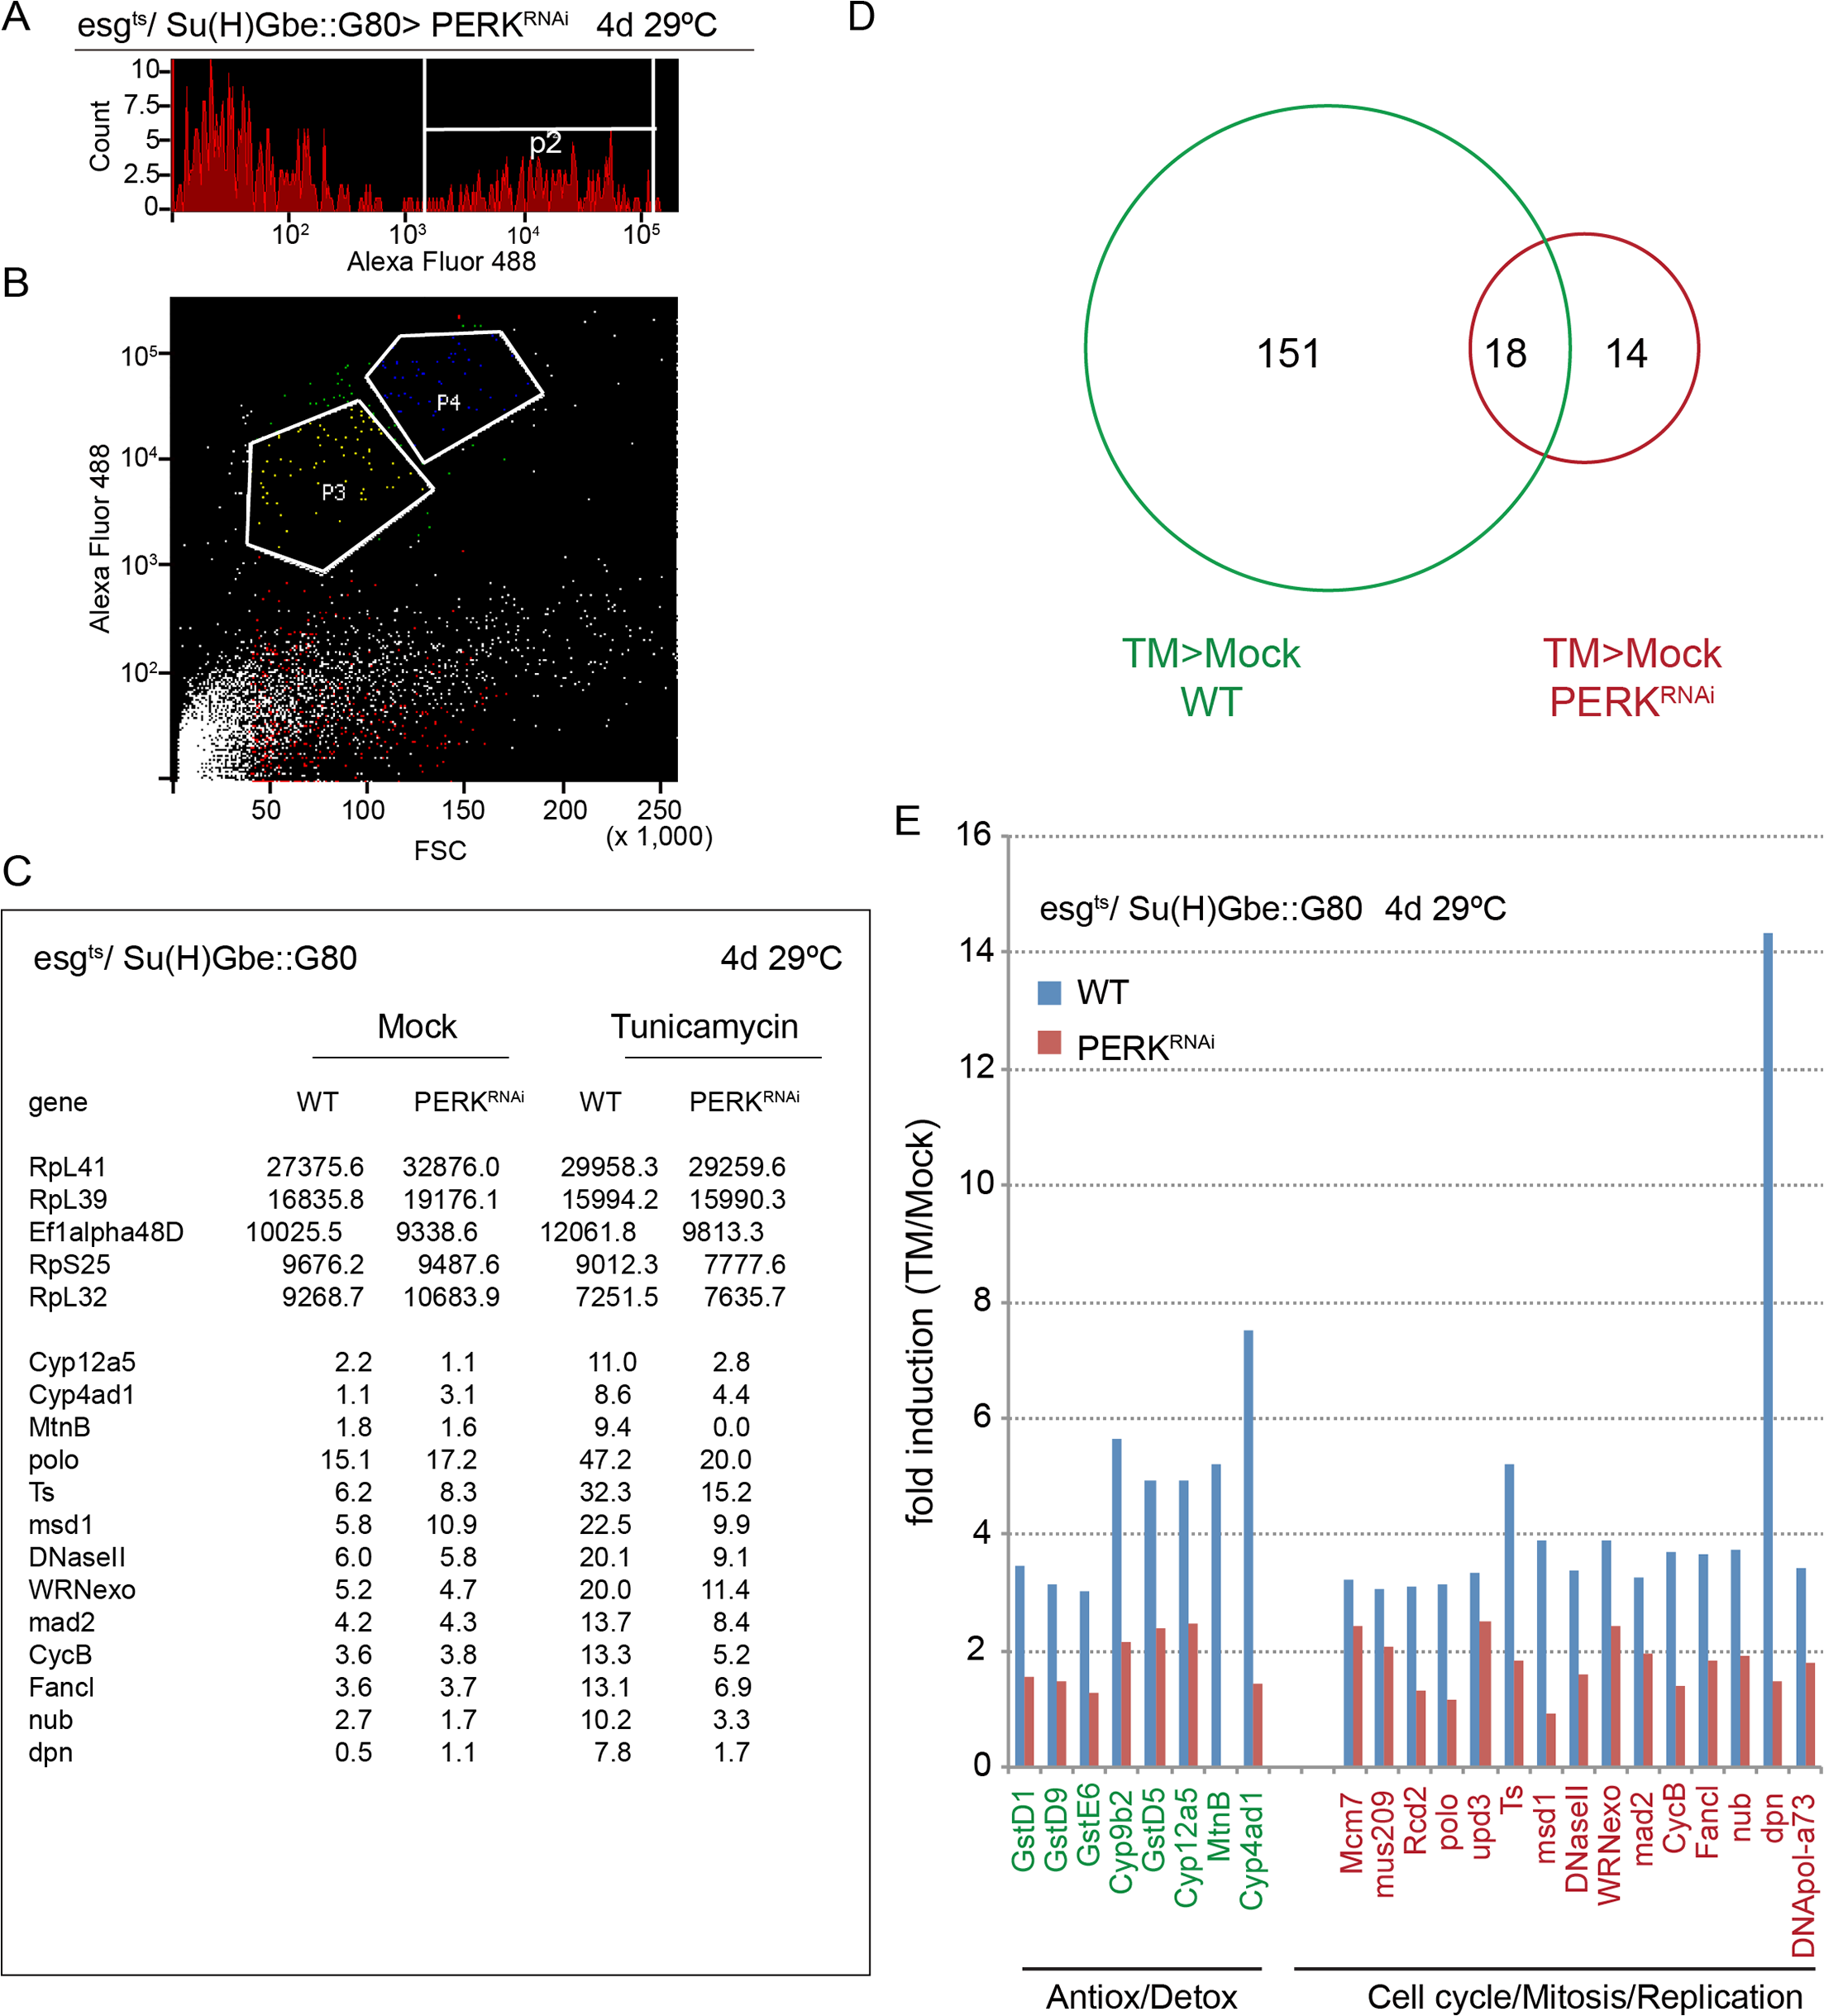 PERK-induced transcriptome changes in ISCs.